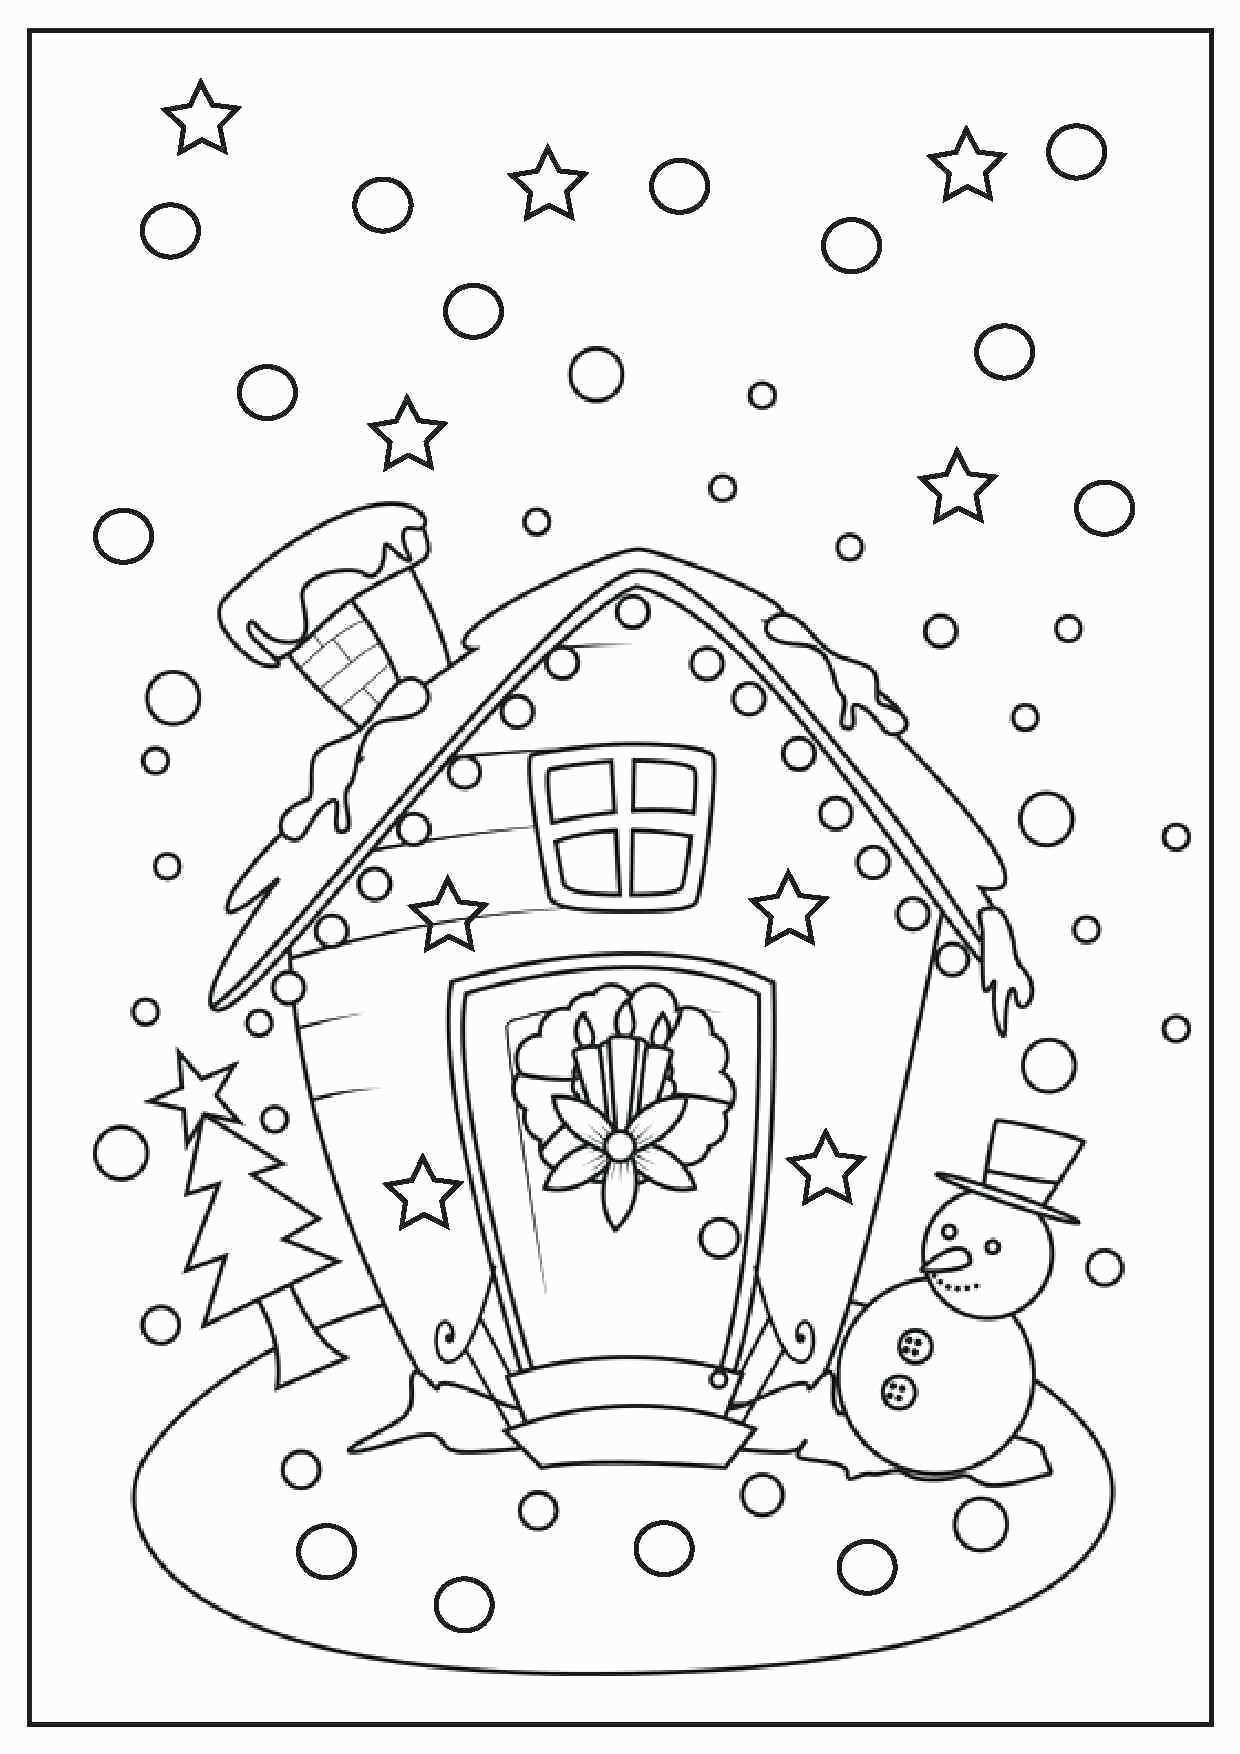 Gingerbread Coloring Pages Gingerbread Coloring Pages Luxury Gingerbread House Coloring Pages